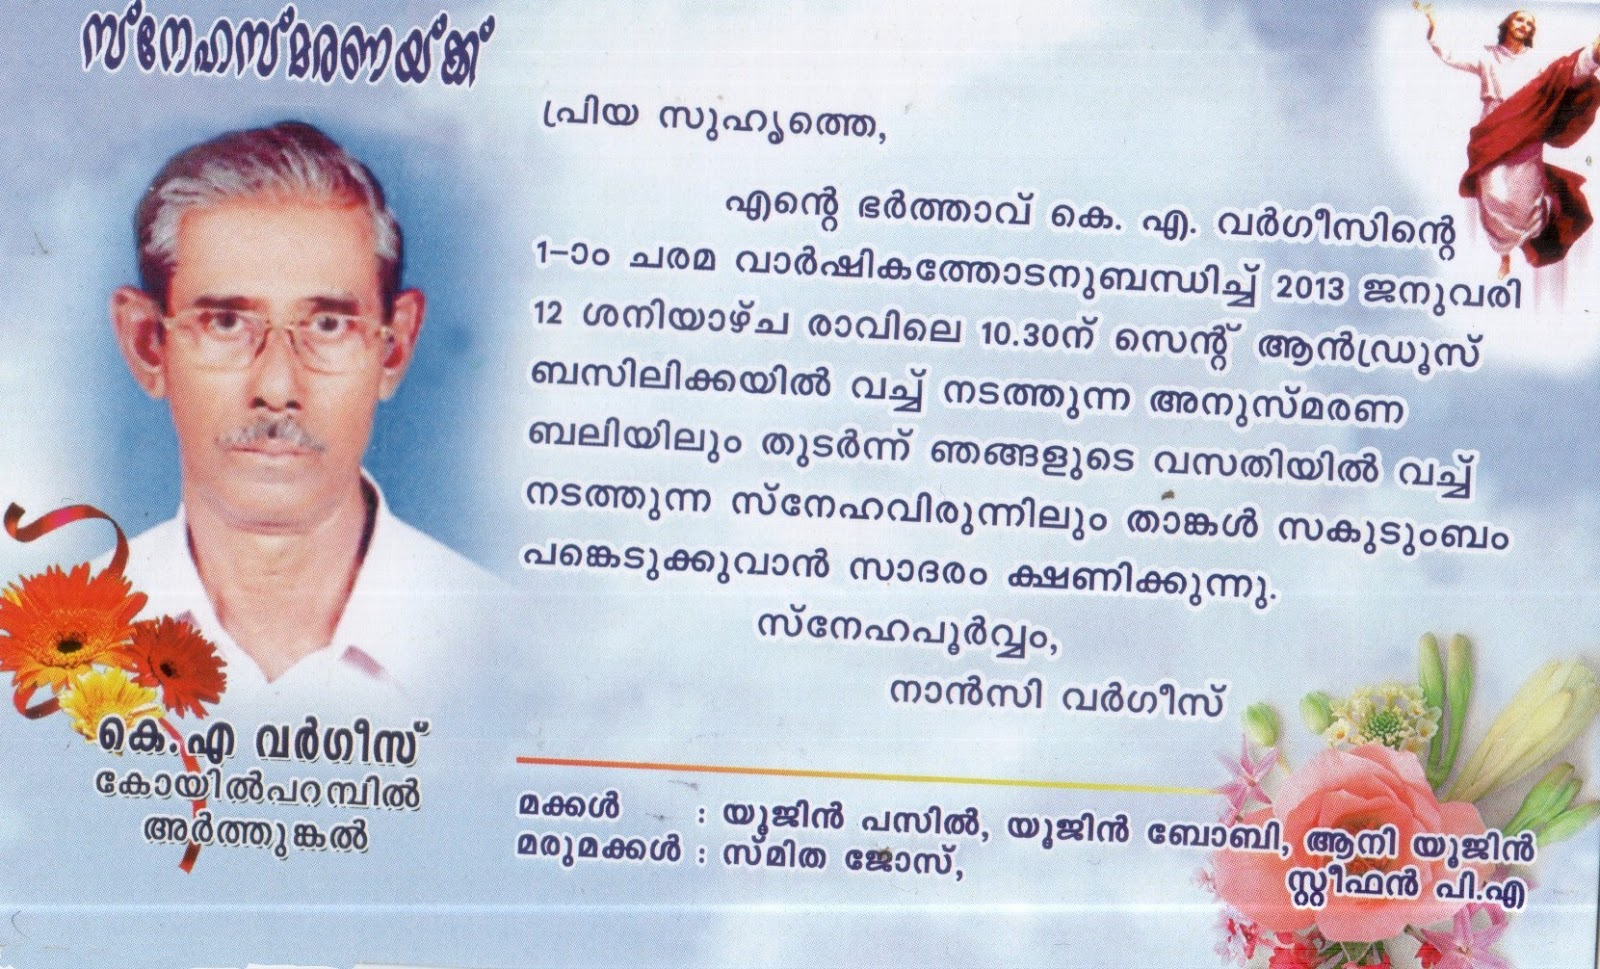 49 invitation for death anniversary invitation anniversary death for invitation death anniversary for fathers anniversary my death 1st koilparampil varghese arthunkal stopboris Gallery